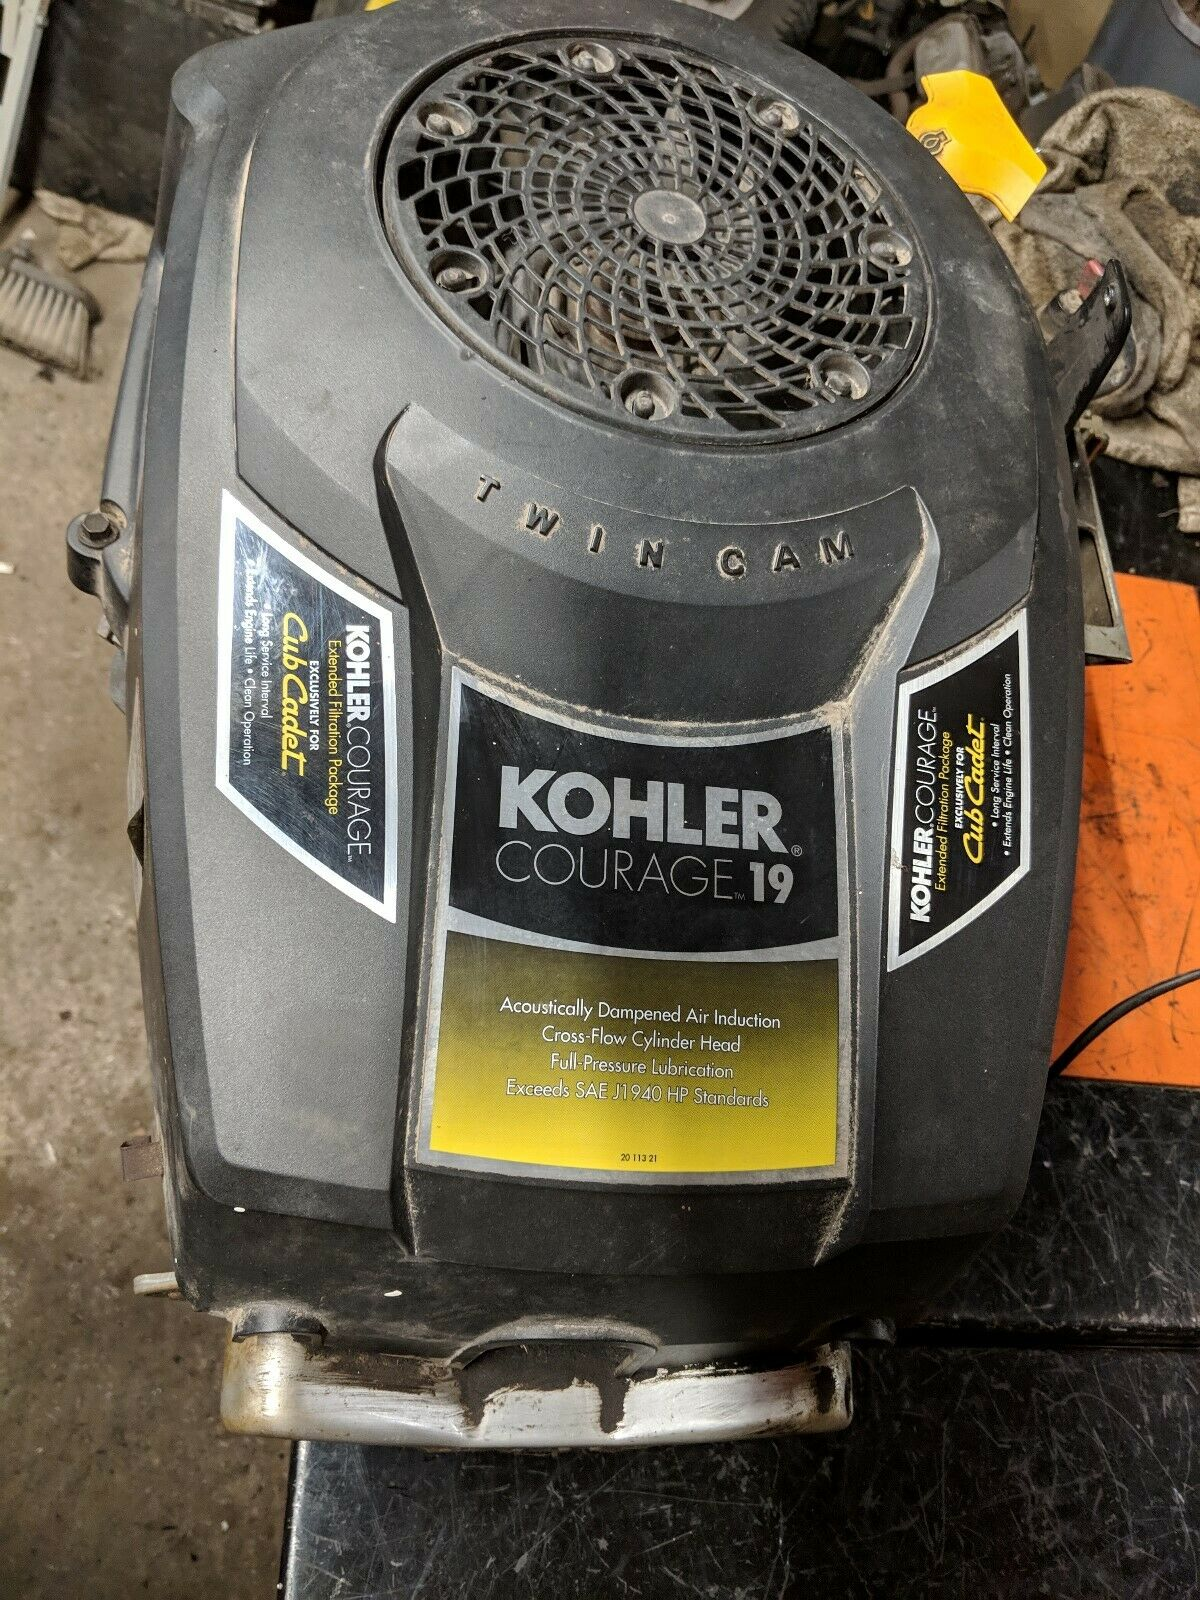 19hp Kohler Courage SV590-0003 throttle control #20 536 06